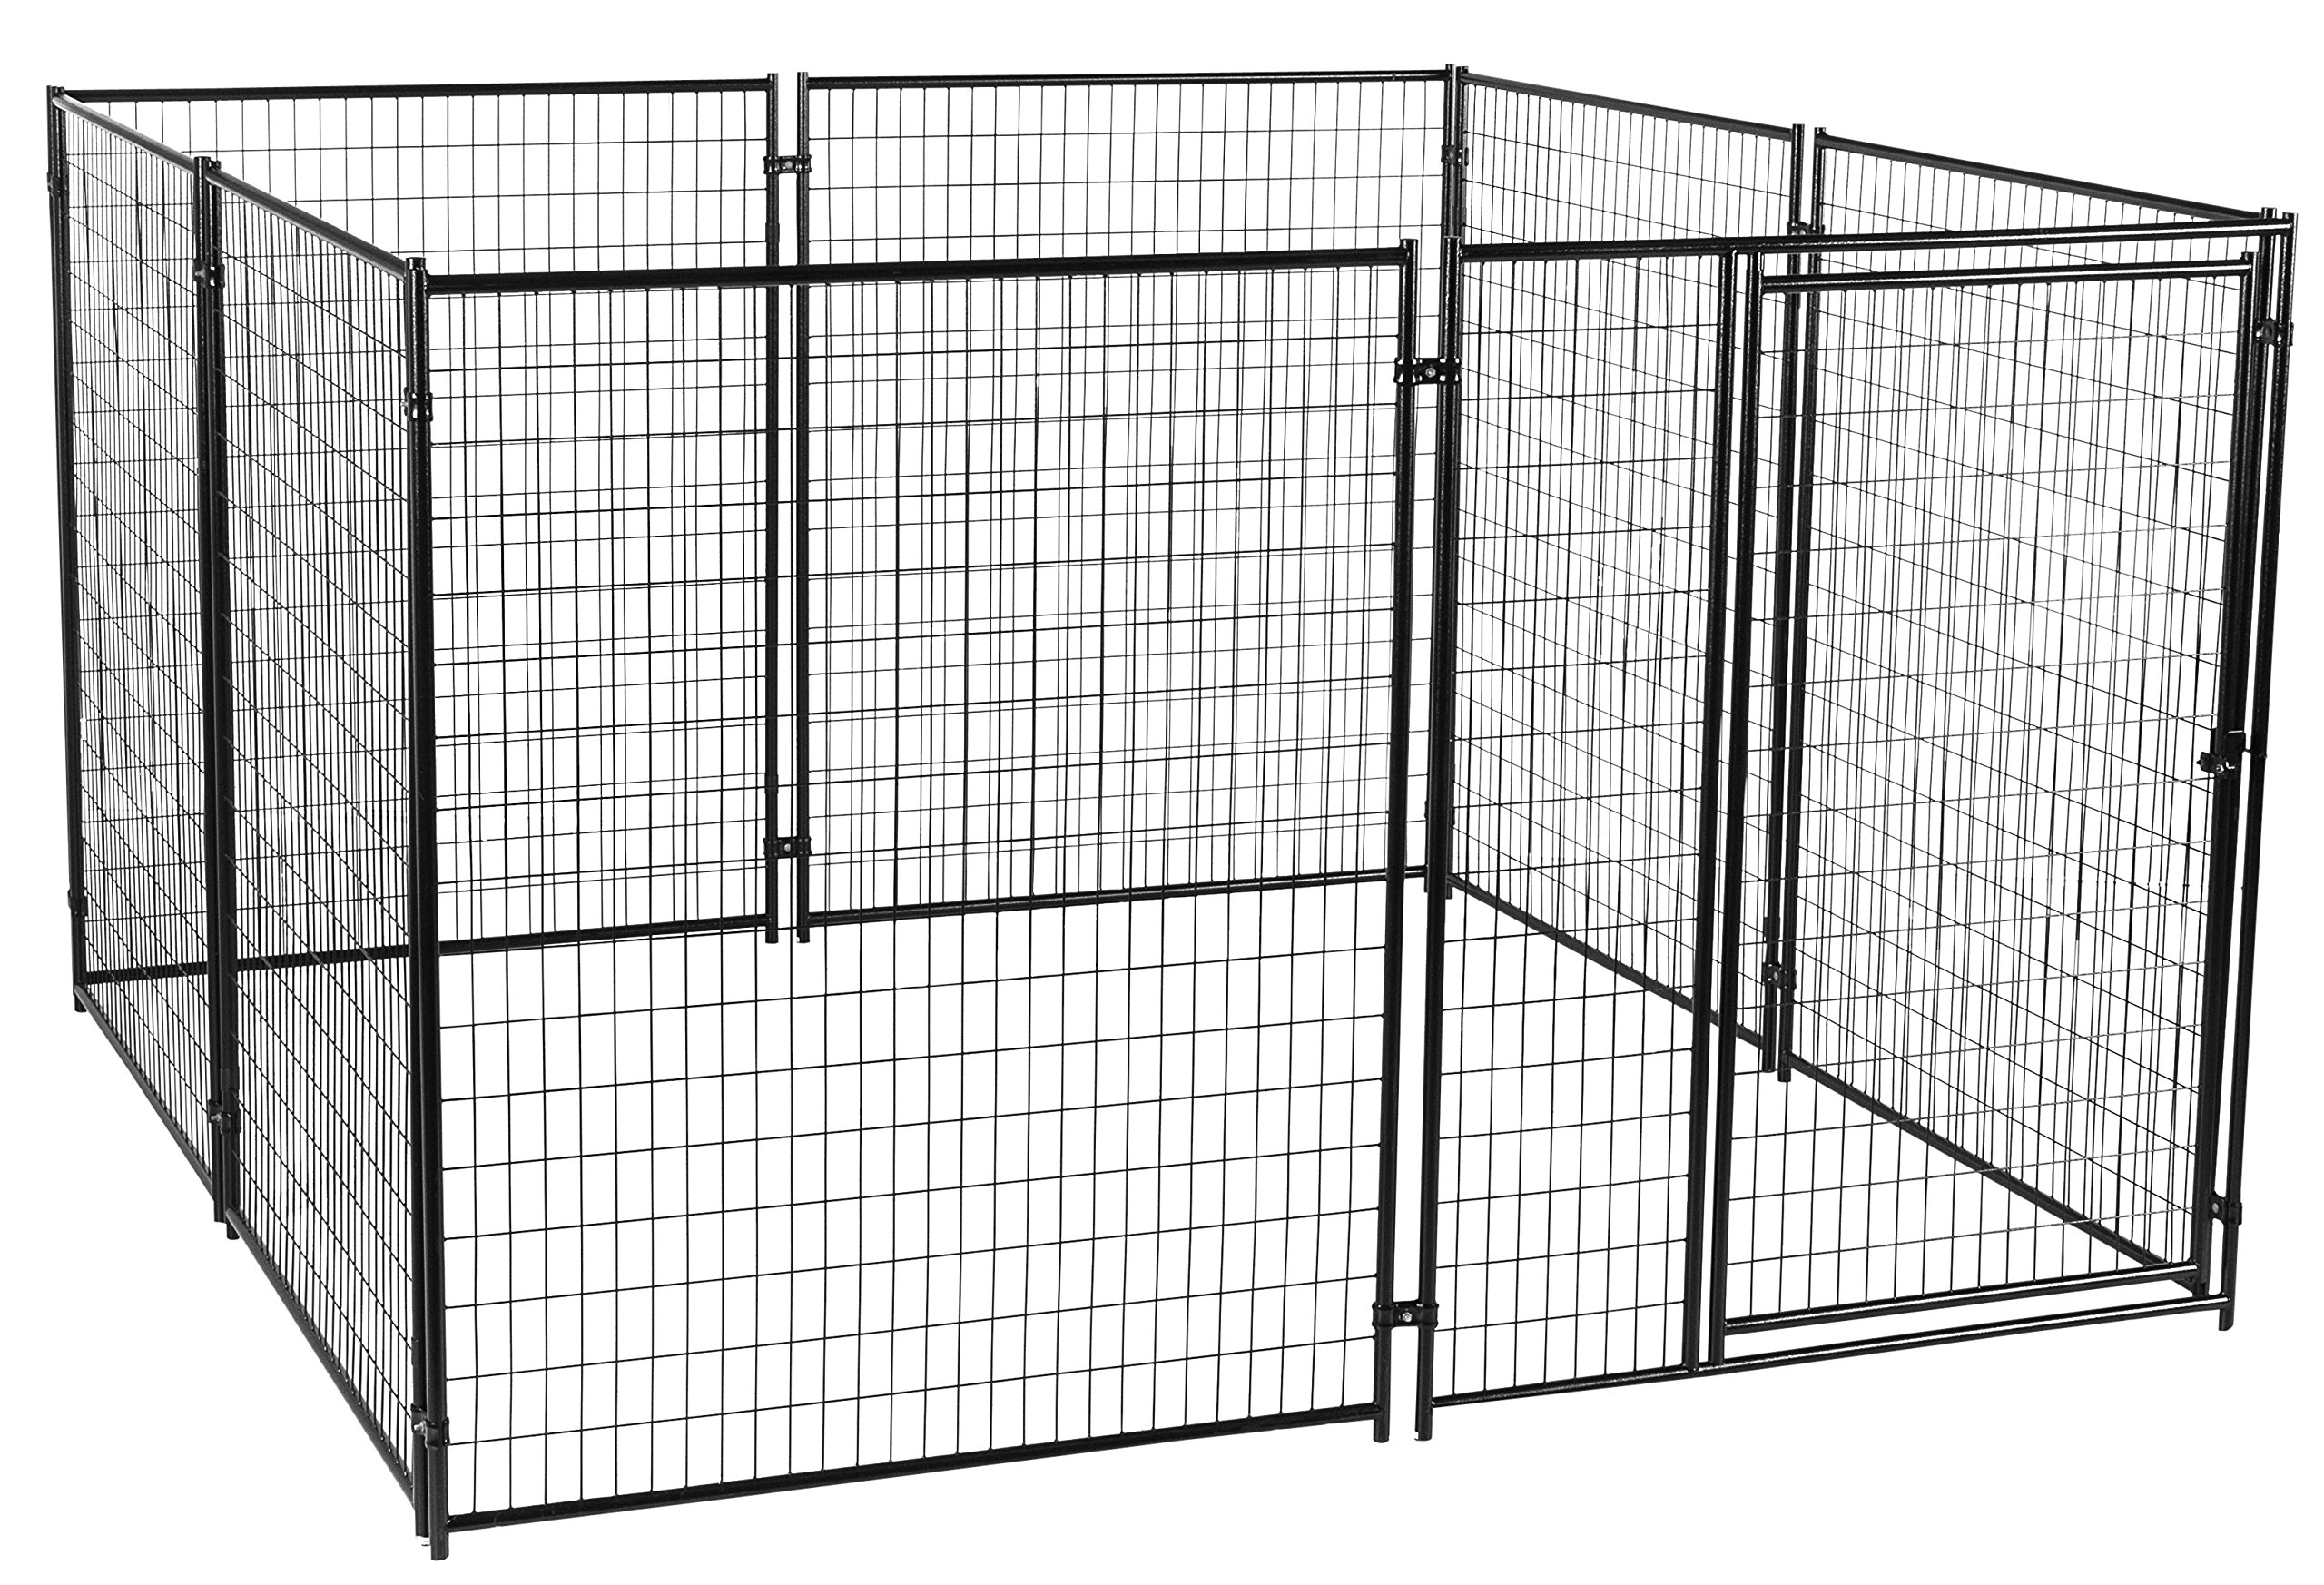 Dog Kennel - Lucky Dog Modular Box Kennel - This Welded Animal Enclosure is Perfect for Medium to Large Dogs and Animals and is Designed with Their Safety and Comfort In Mind. Dimensions (6'H x 10'L x 10'W); 200 lbs by Lucky Dog